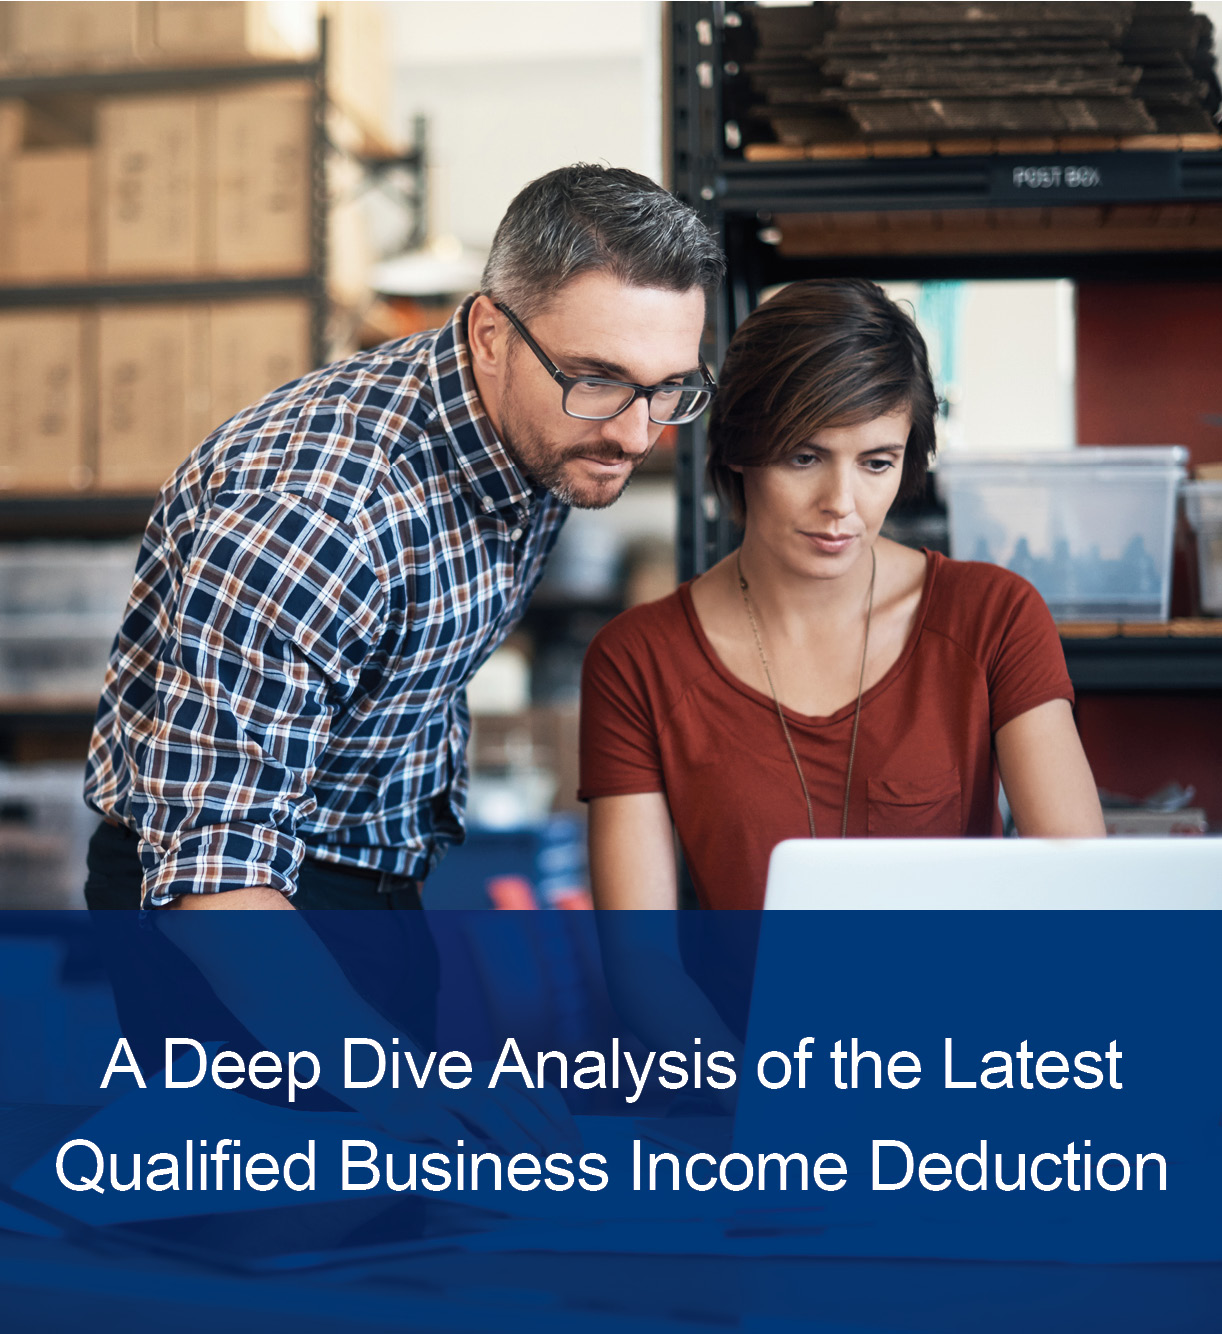 The Latest Qualified Business Income Deduction